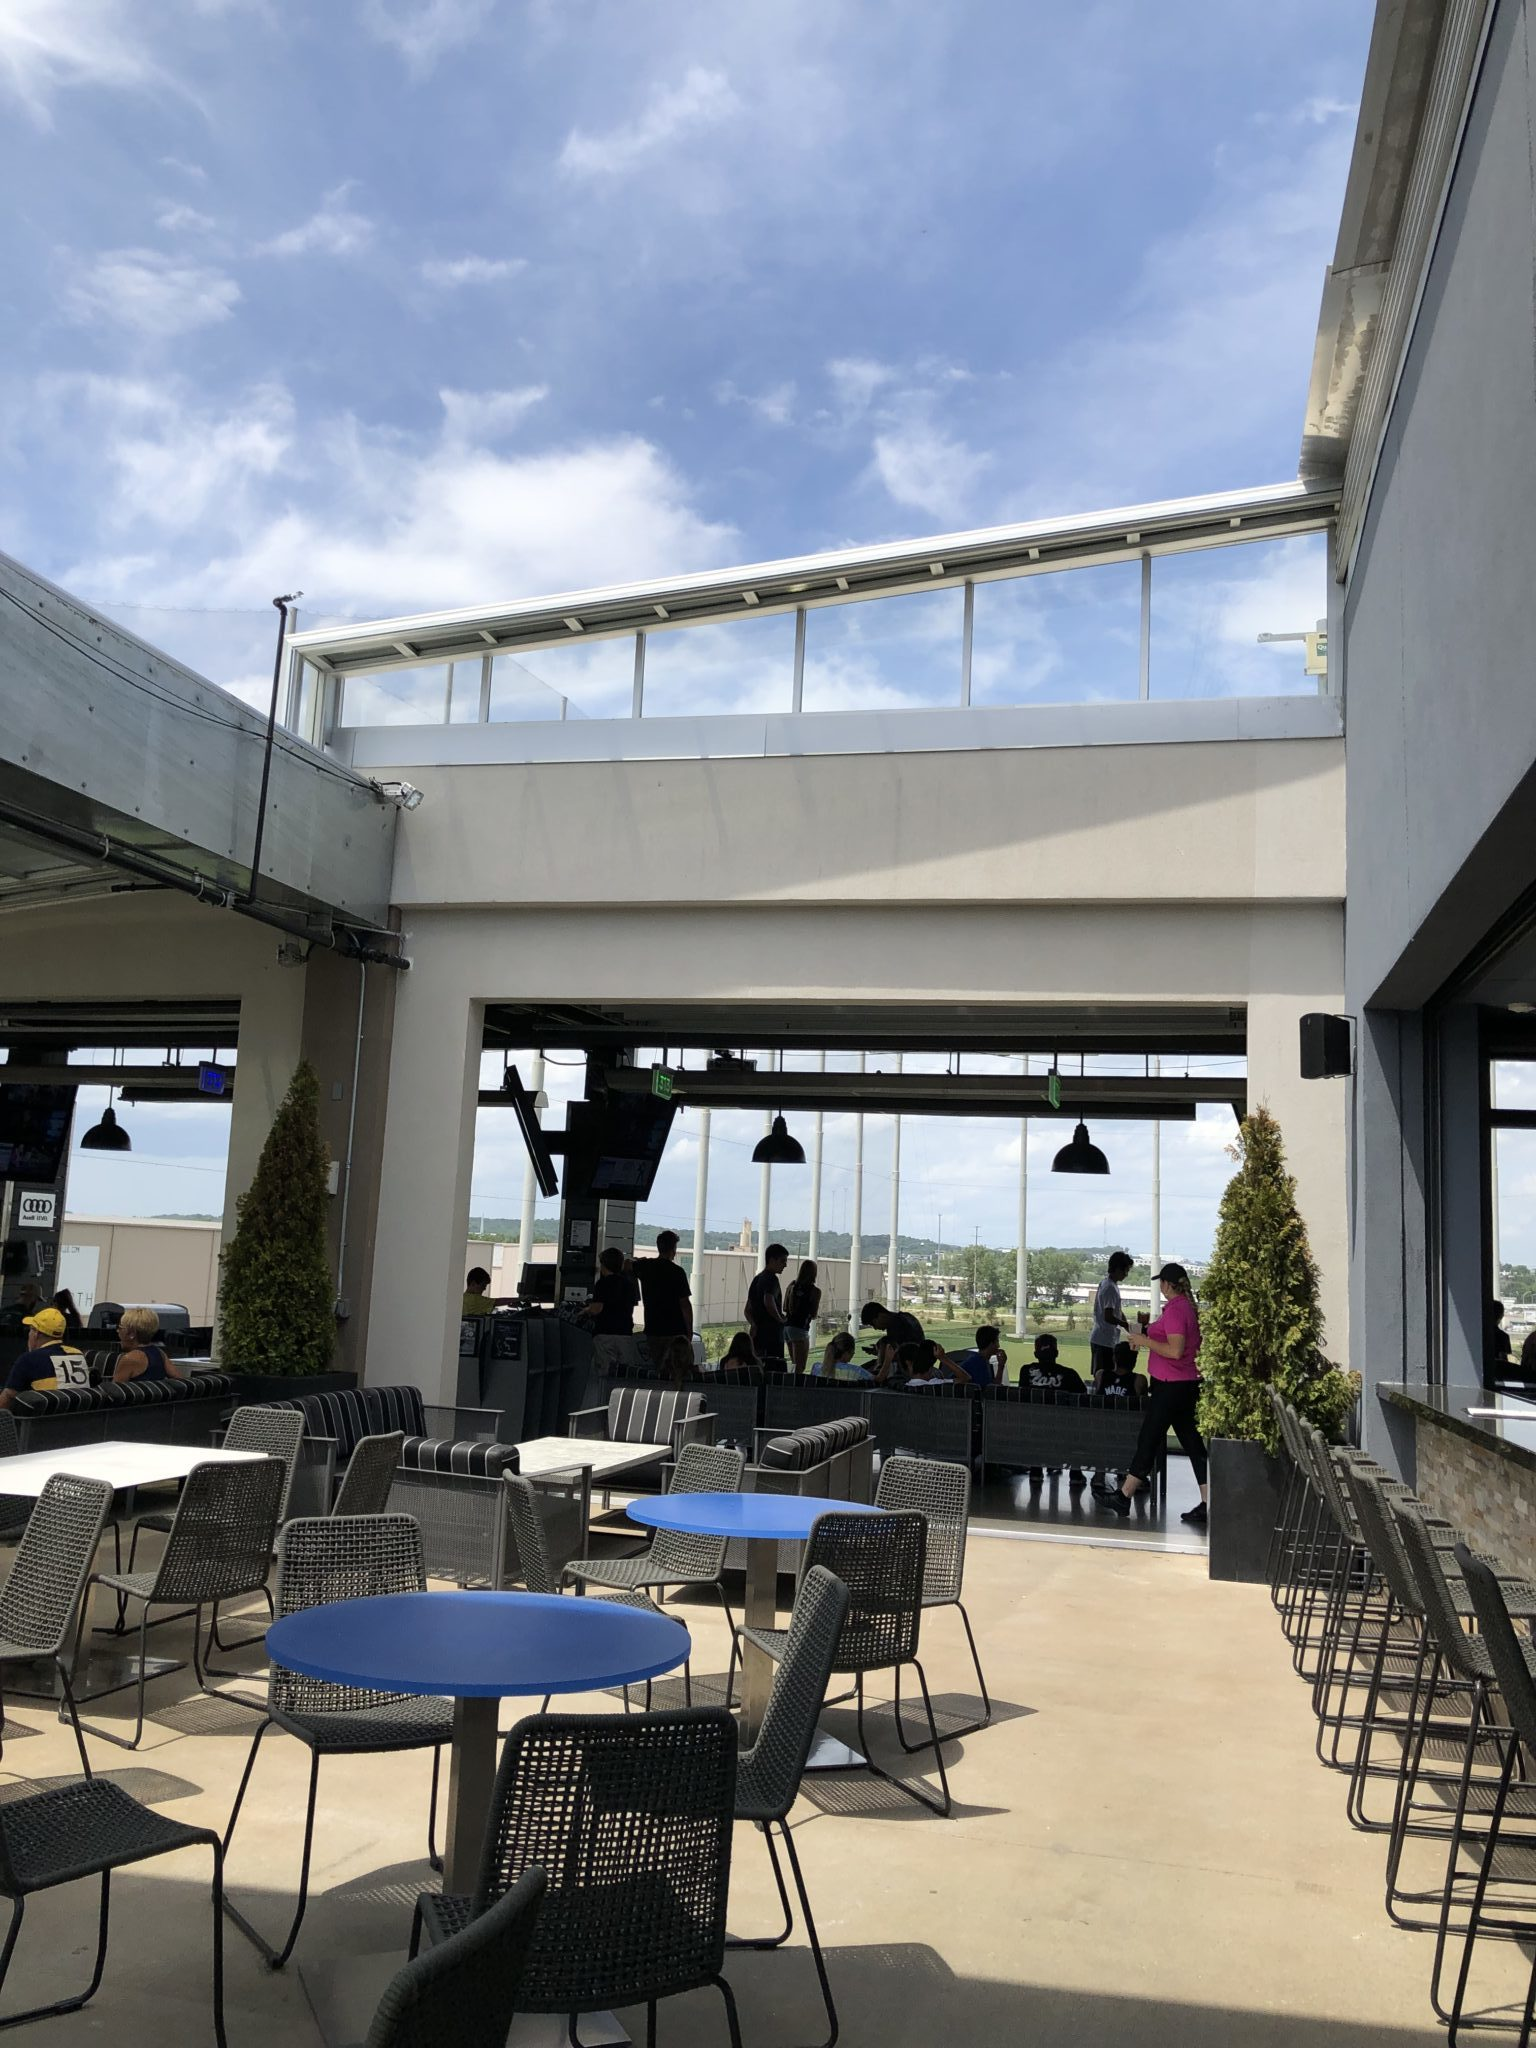 Restaurant Chains With Roll A Cover Retractable Roof